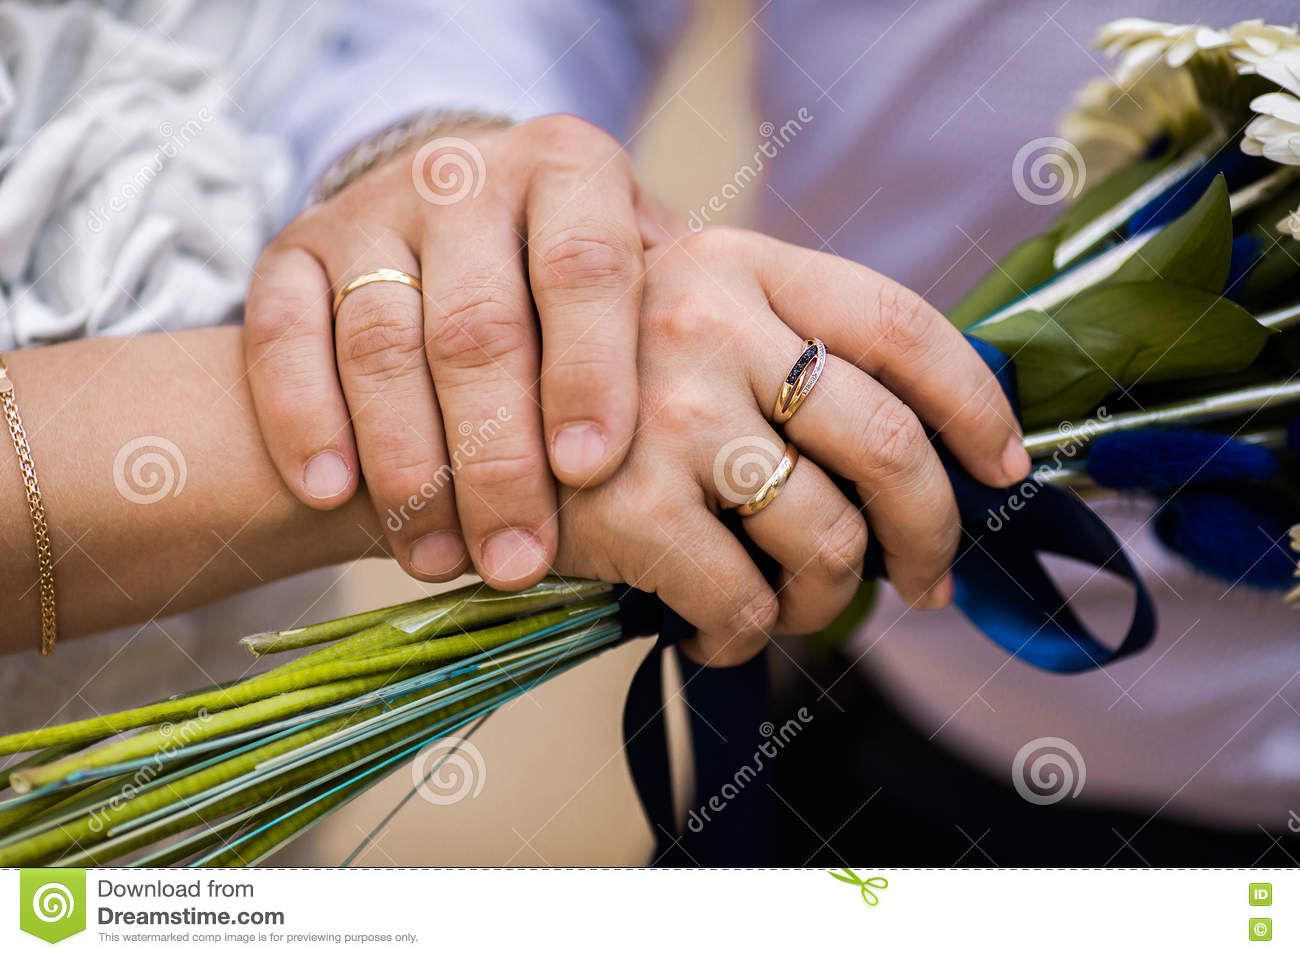 Bride And Groom Next To Wedding Rings On Their Hands Male And